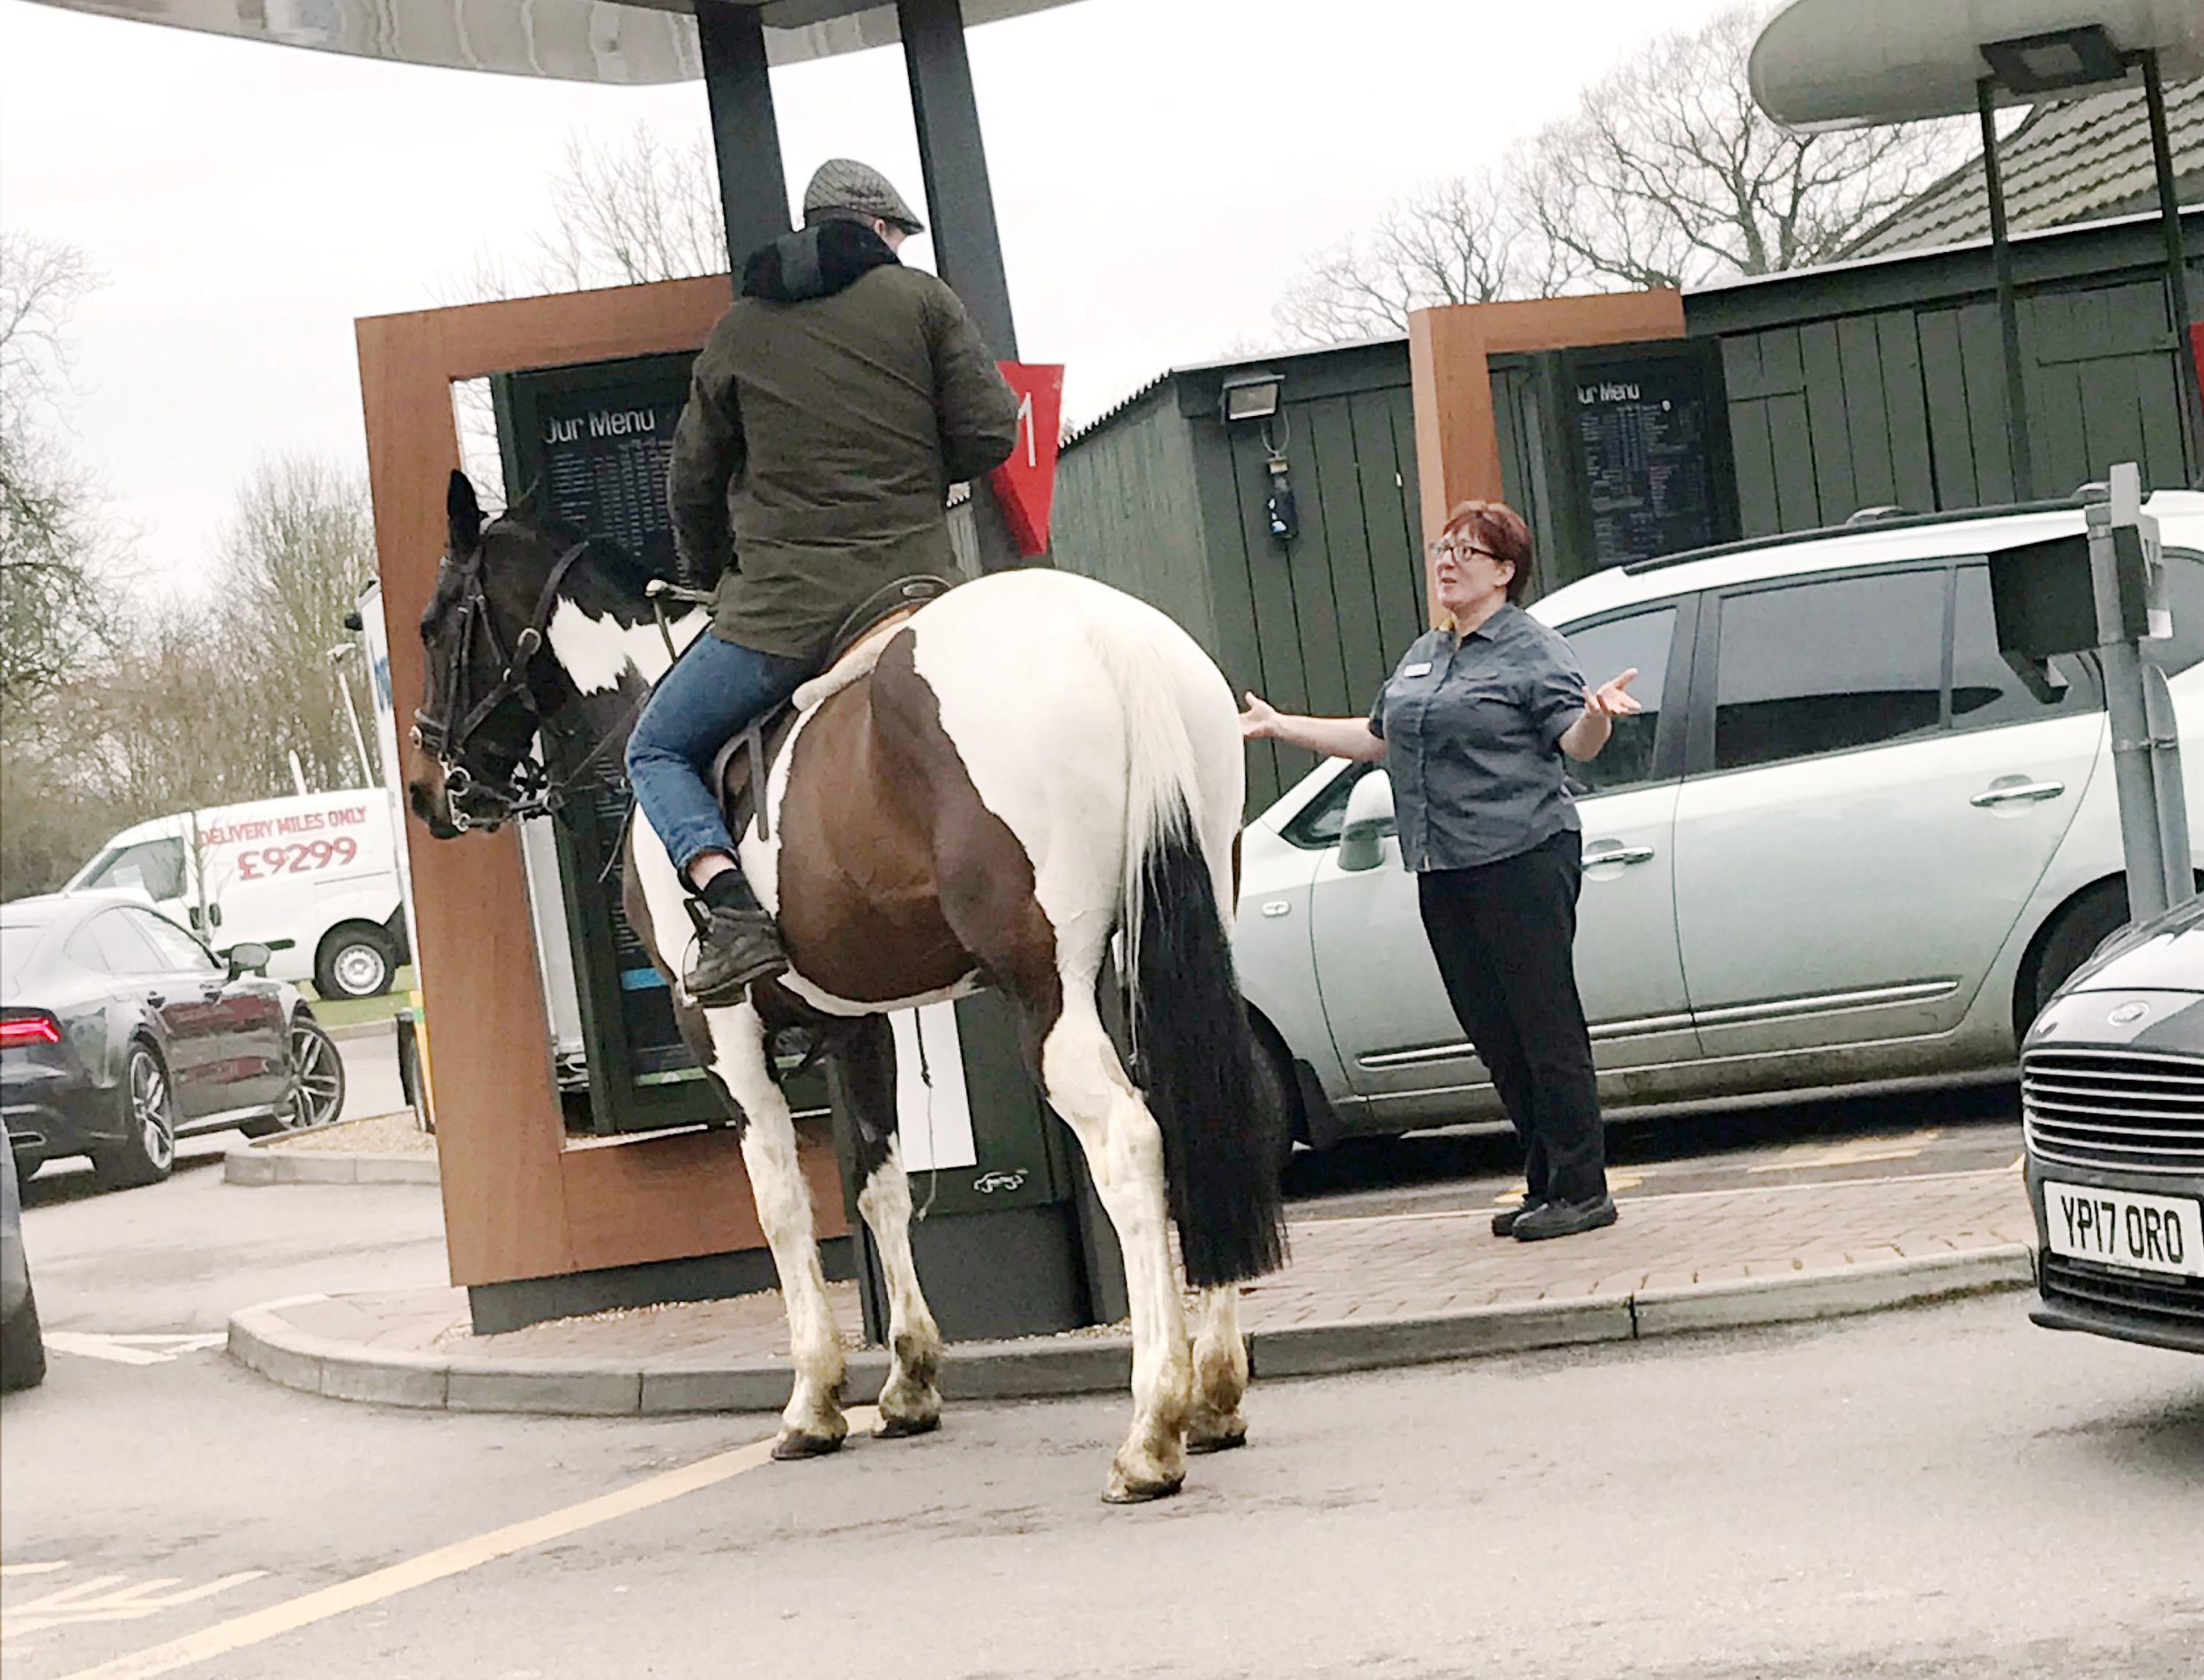 """A man on a horse tries to order at McDonalds in Beccles, Suffolk. See Masons copy MNHORSE: This is the hilarious moment a man tried to ride a HORSE through a McDonald's drive-thru - before being told 'neigh'. Bemused customers were surprised to see the rider """"trotting up"""" to the kiosk before trying to place an order for his 'mane' course. But he was stopped in his tracks by a member of staff who told him he had to dismount."""